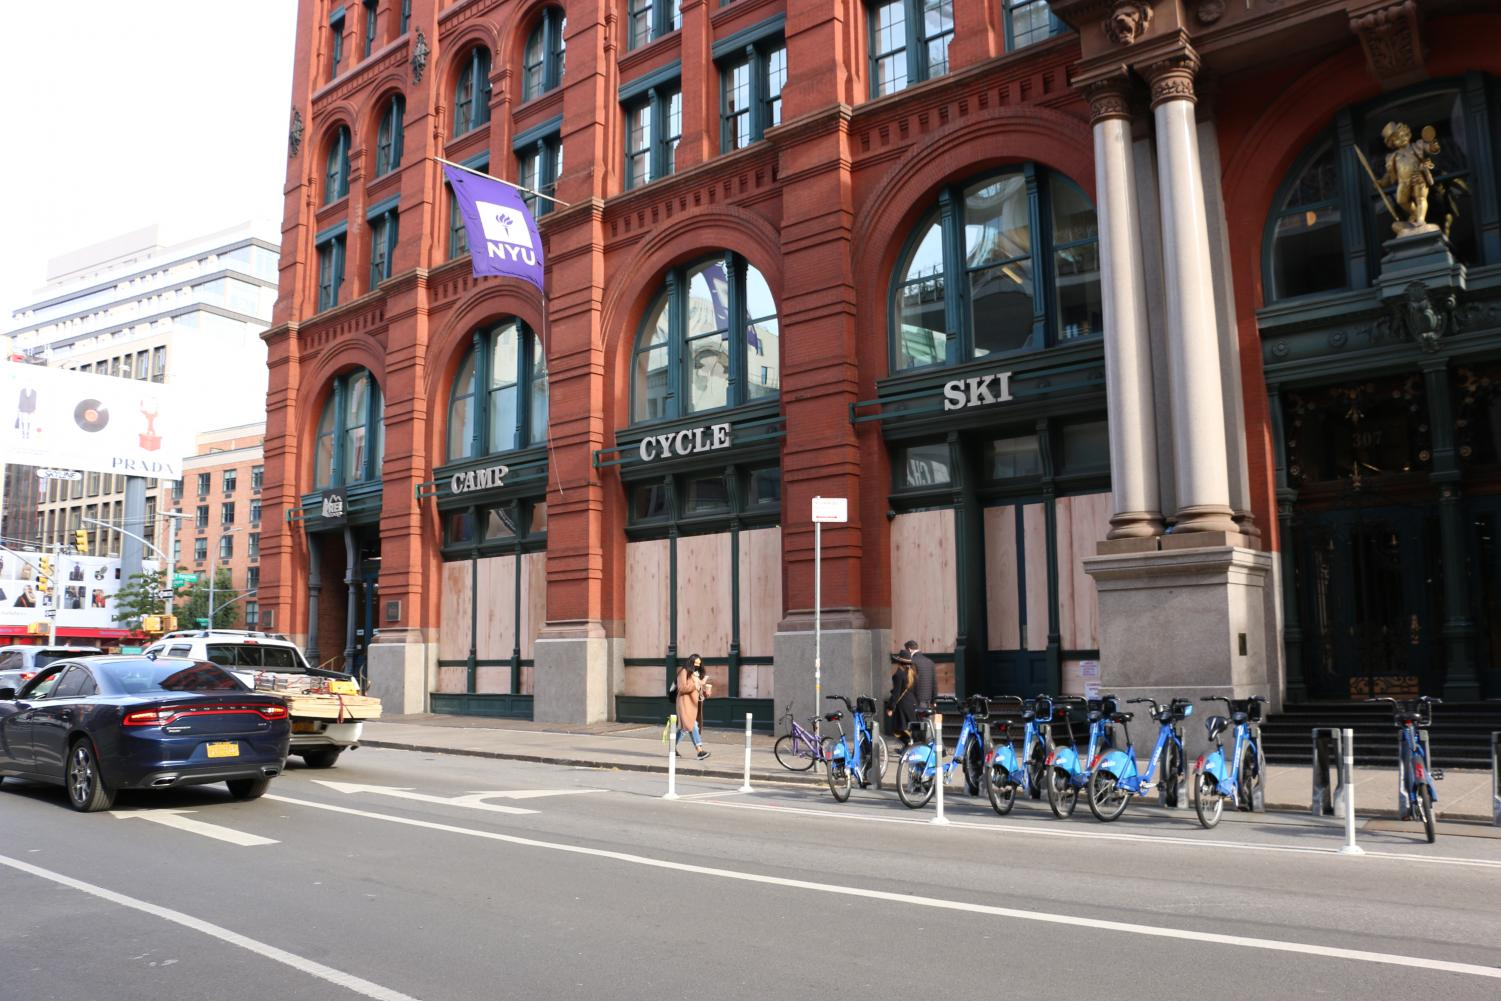 the boarded up REI store in Soho with a purple NYU flag flying above